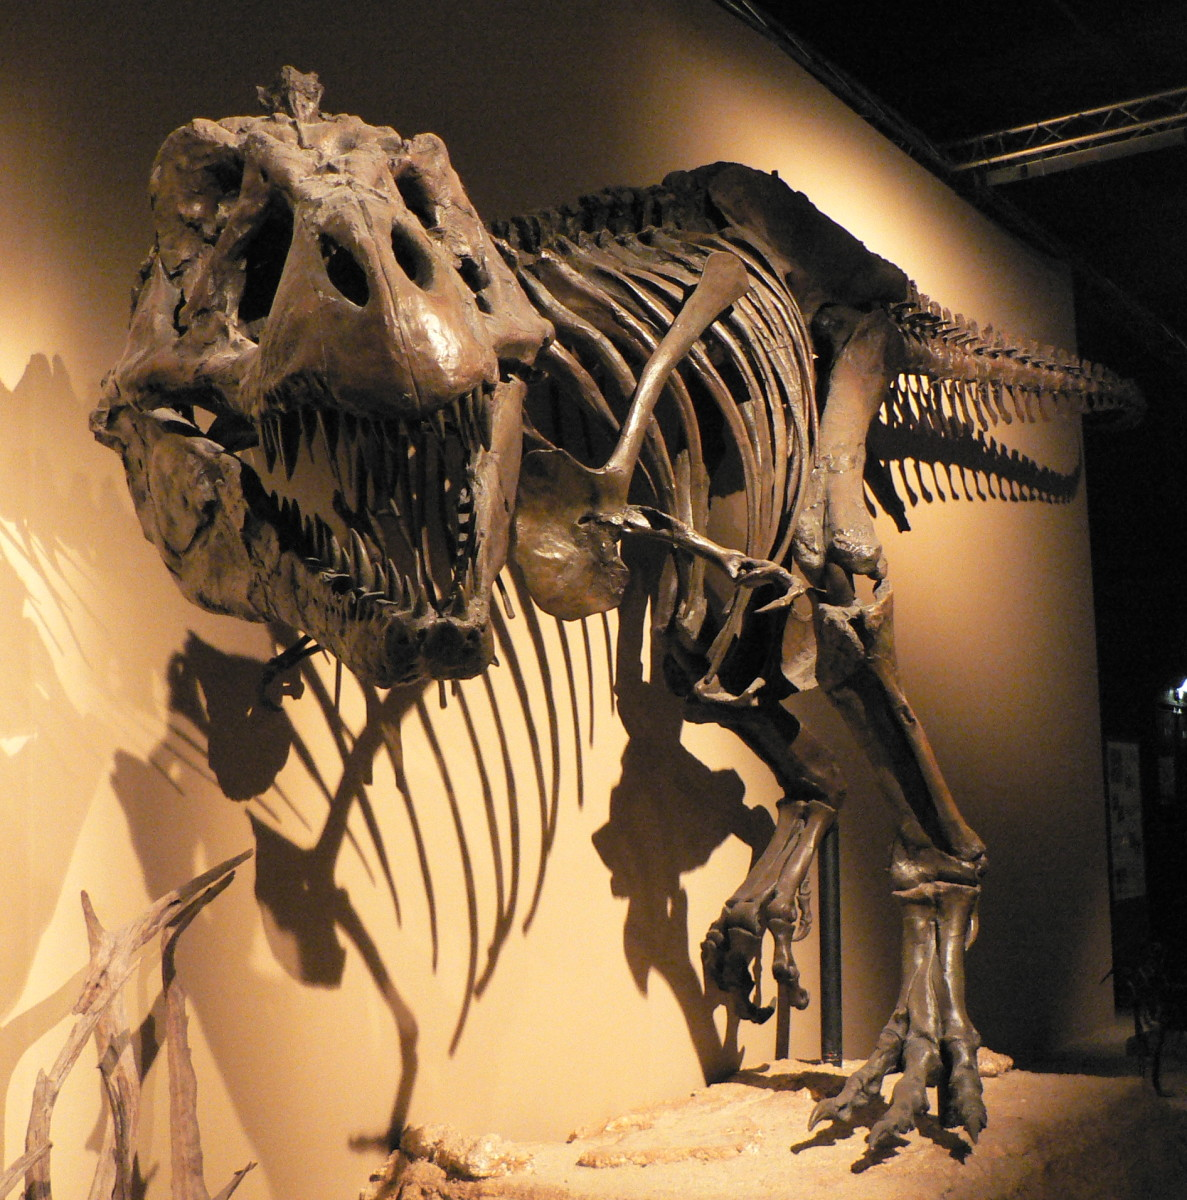 There are many more dinosaurs that exist than we will ever find bones for. Here is a skeleton of a Tyrannosaurus Rex.